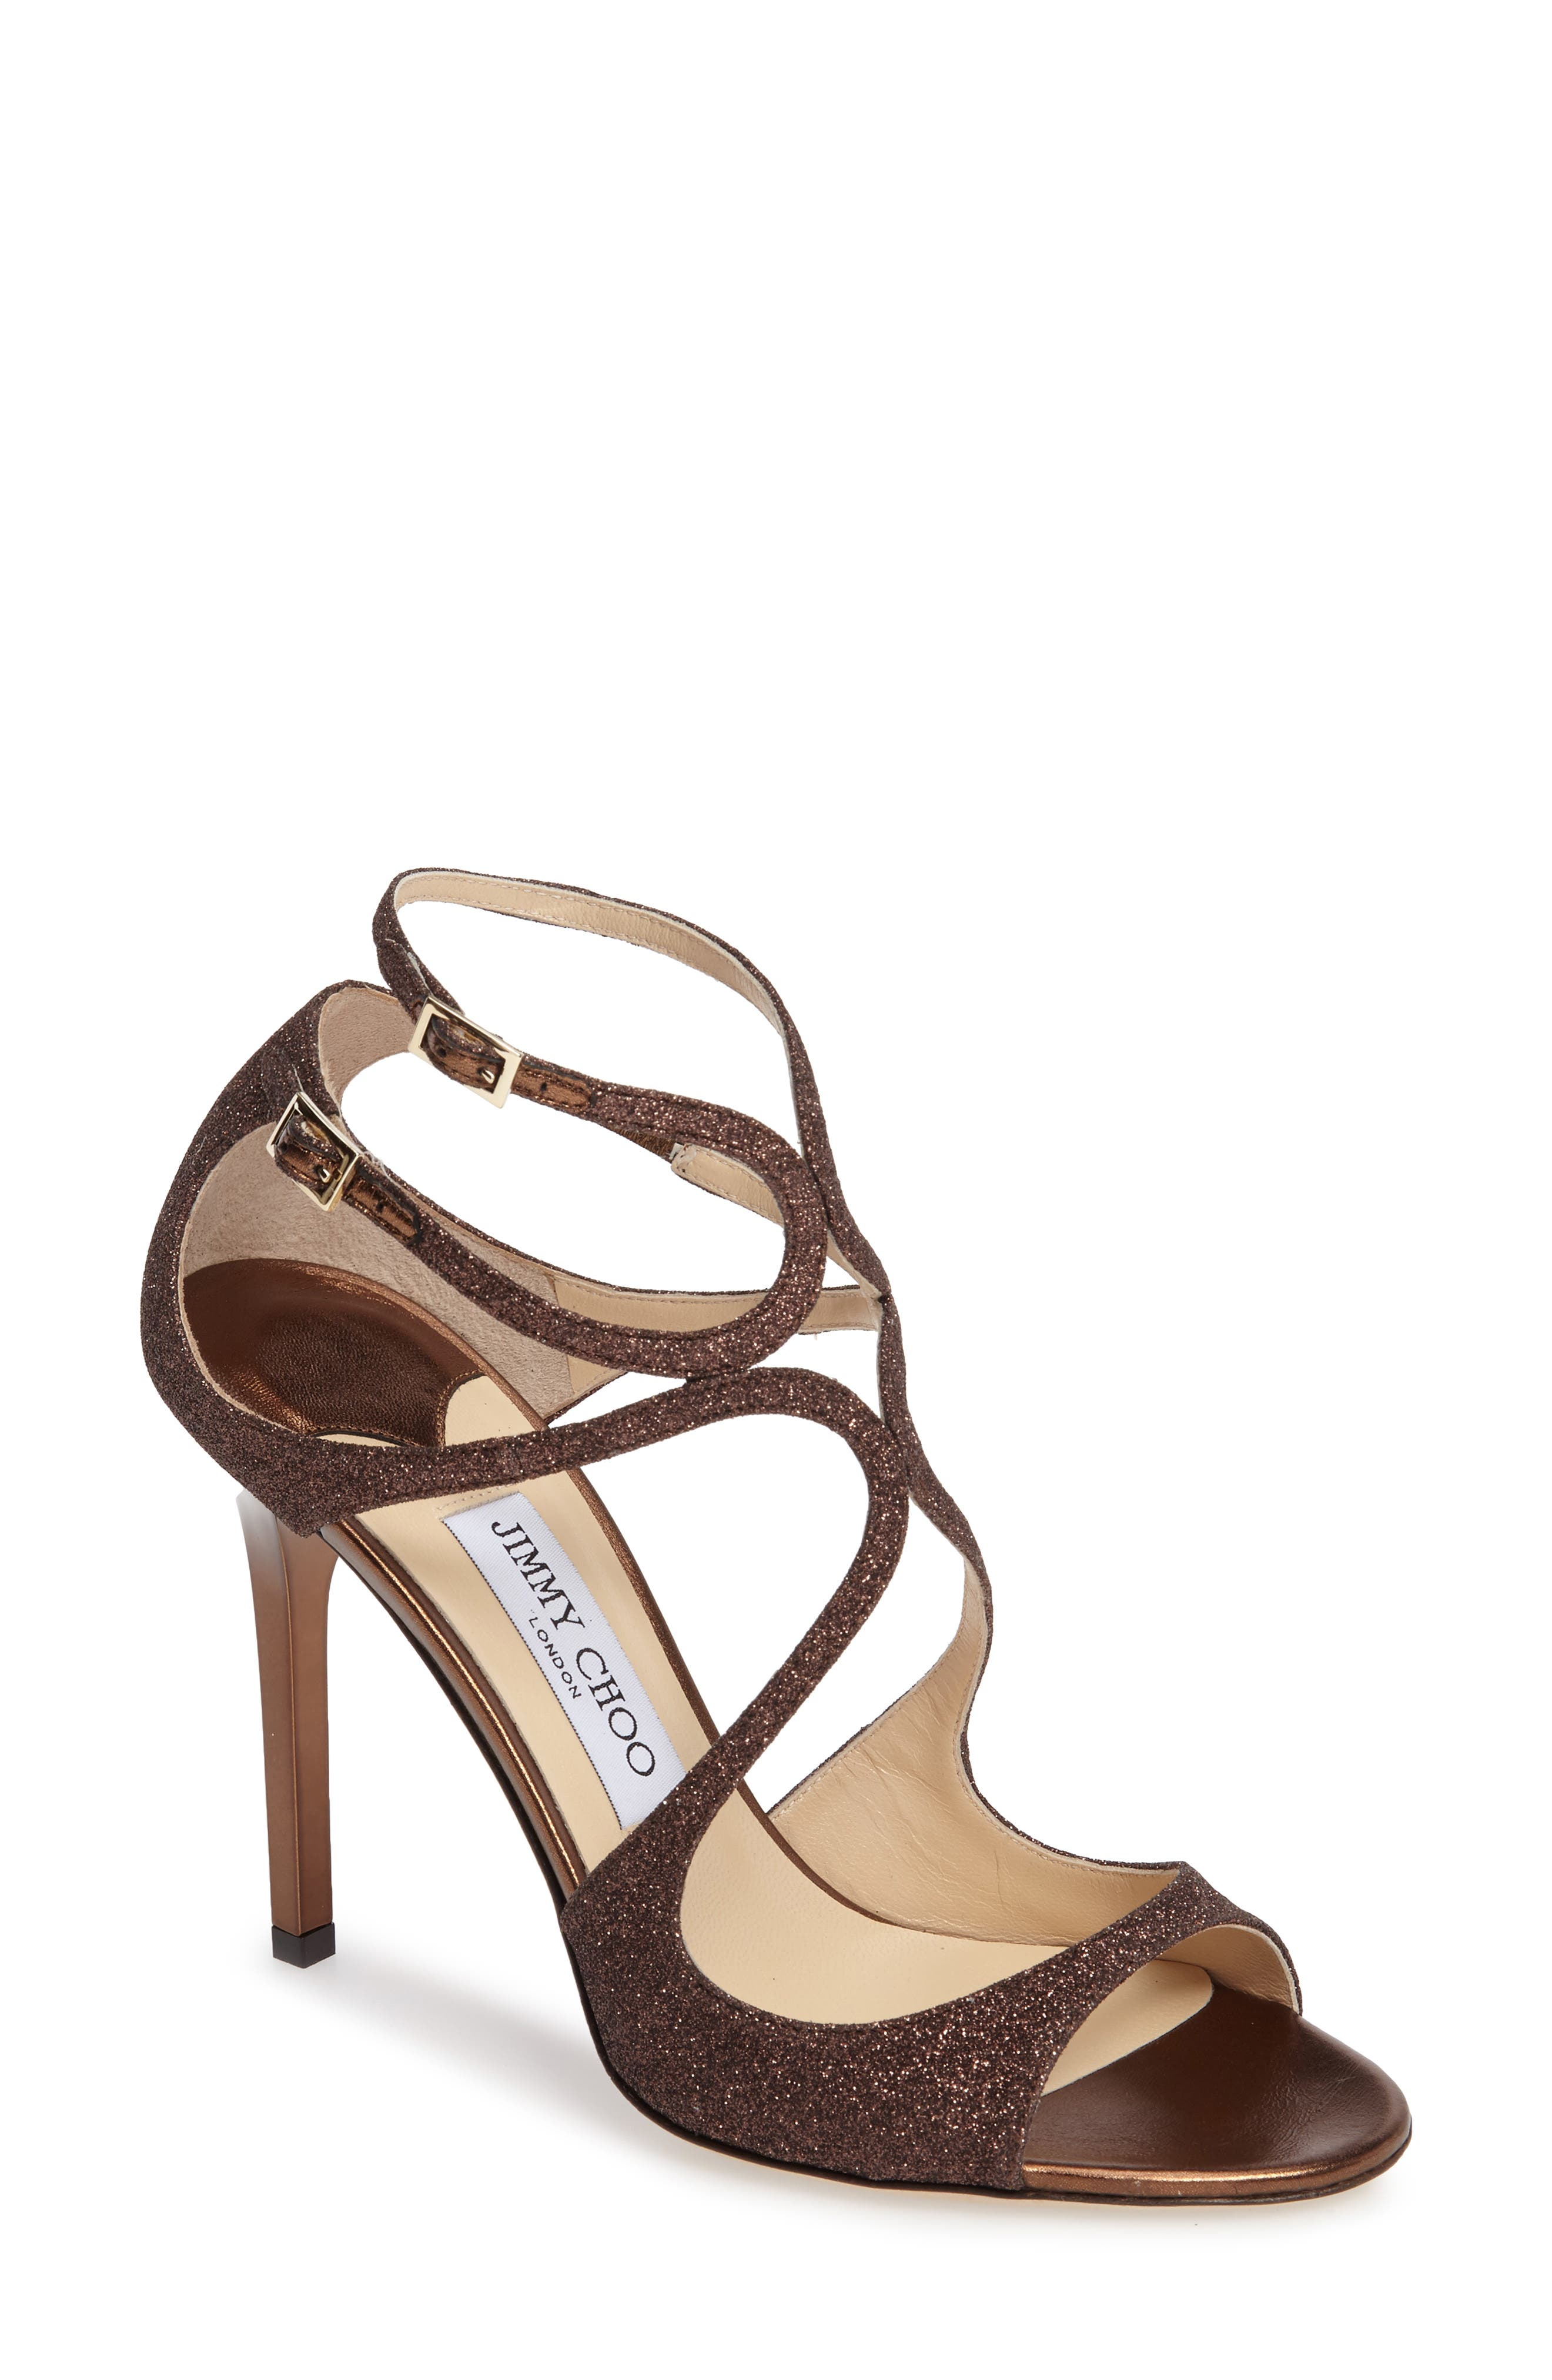 Main Image - Jimmy Choo Lang Sandal (Women)